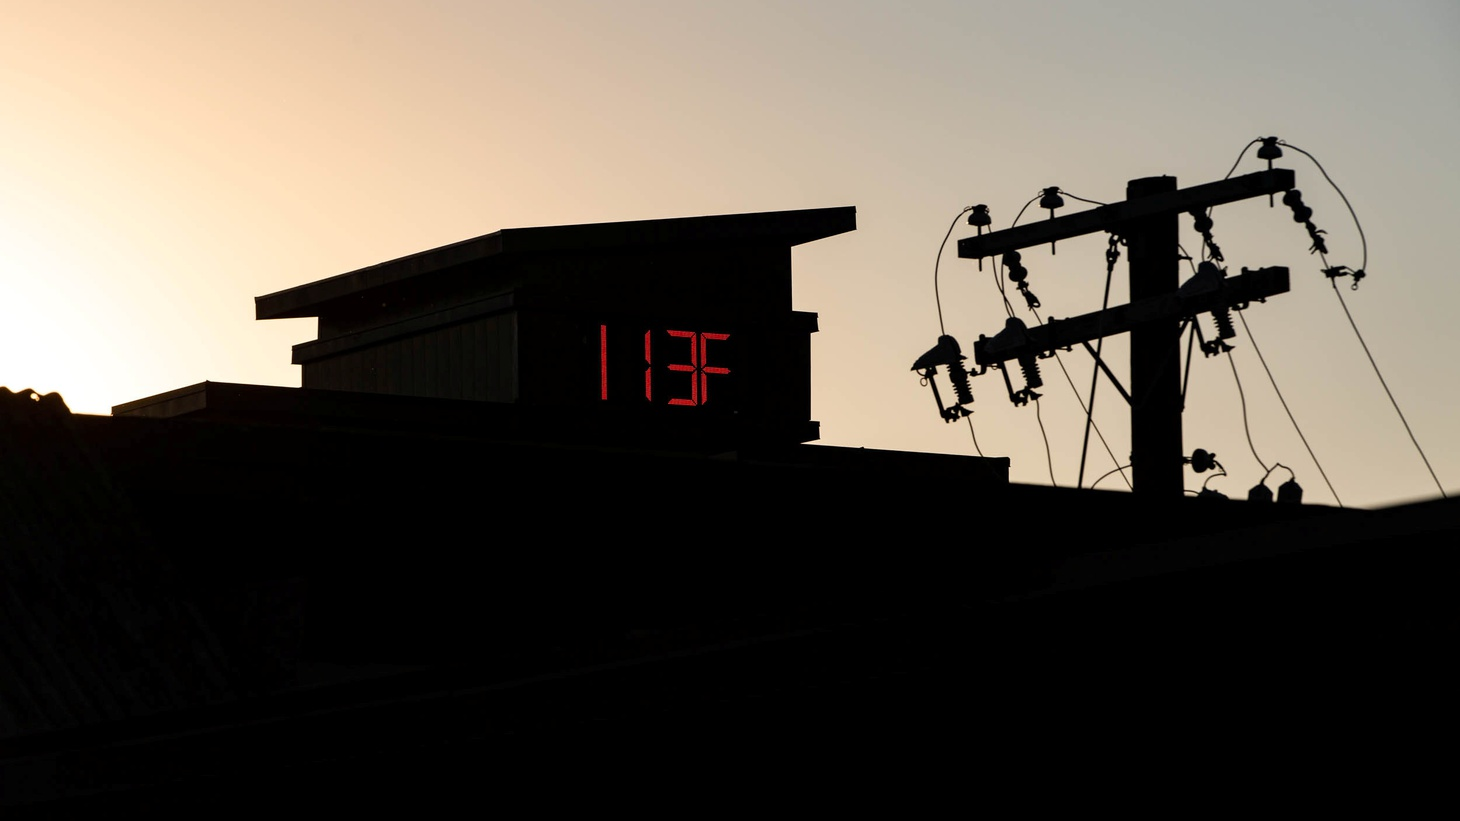 A thermometer reads 113 degrees Fahrenheit during a heat wave in Portland, Oregon, U.S. June 27, 2021.